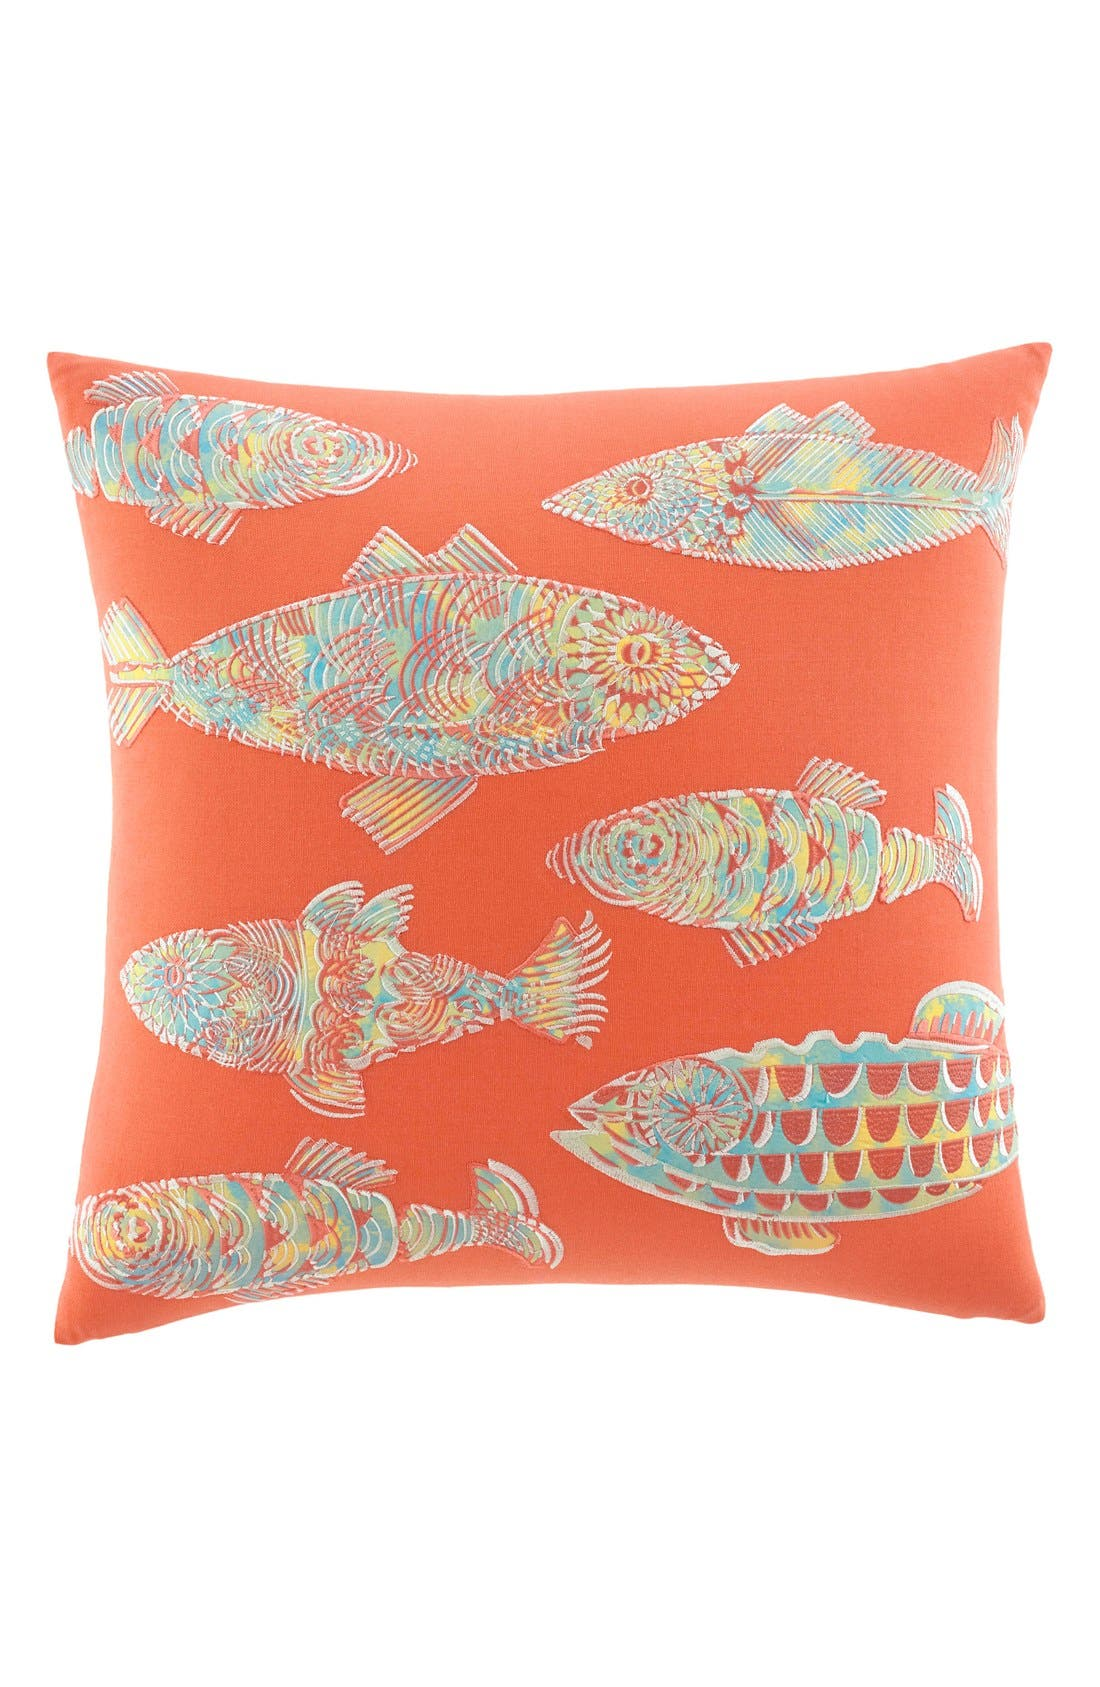 'Batic Fish' Pillow,                             Main thumbnail 1, color,                             CORAL/ MULTI